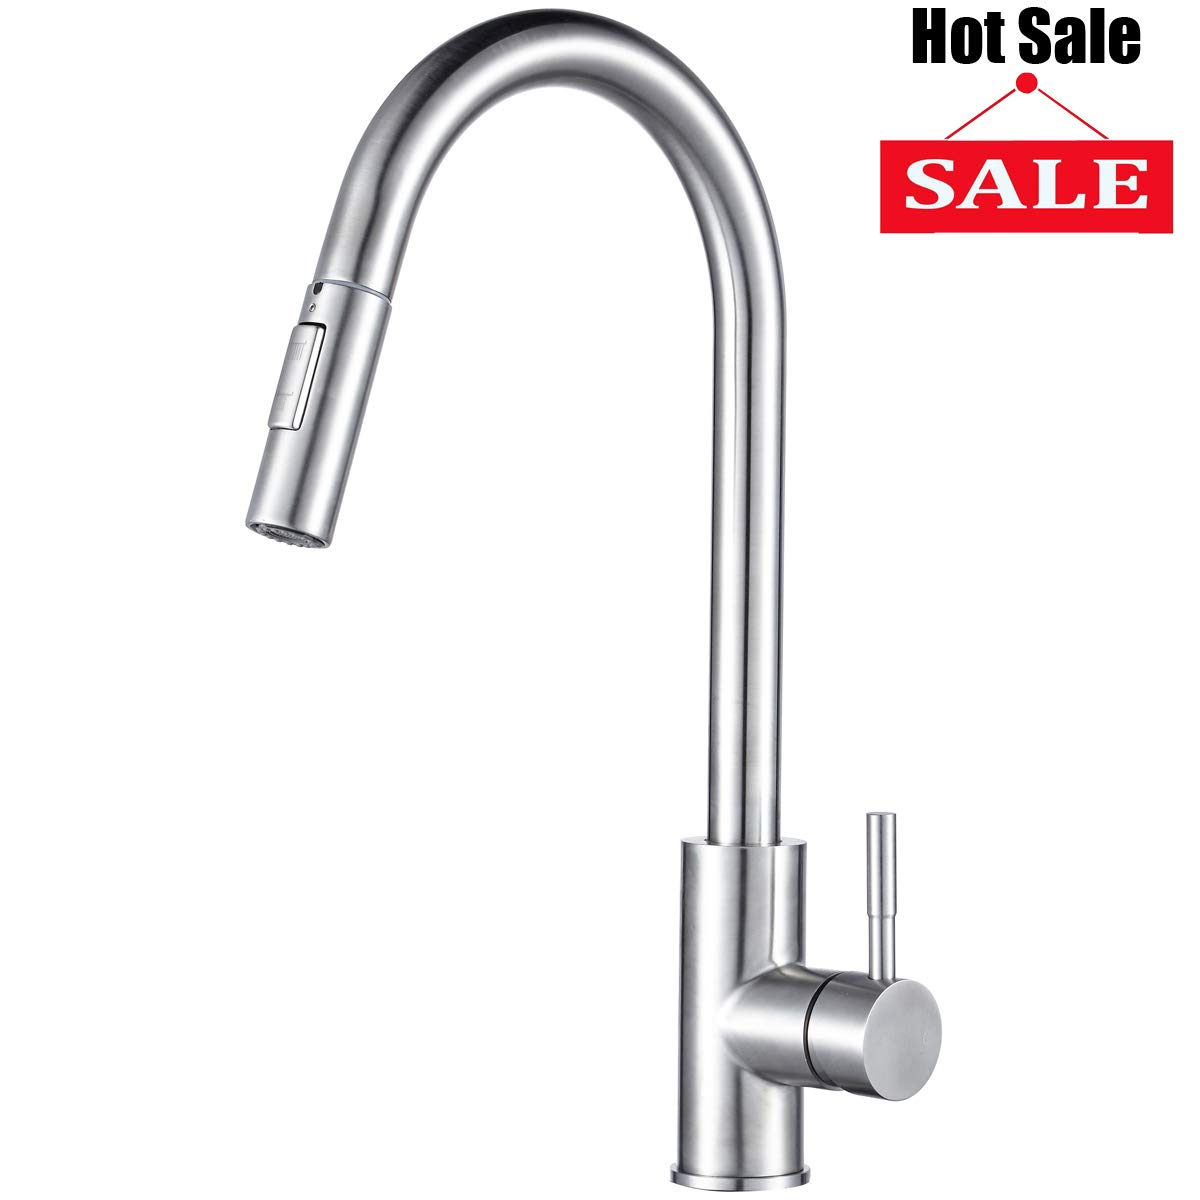 Visen Kitchen Faucet High Arc Stainless Steel Single Lever Handle Faucet with Pull Down Dual Function Sprayer and Water Temperature adjustment, Durable Valve, 360° rotation, Brushed Nickle Finished